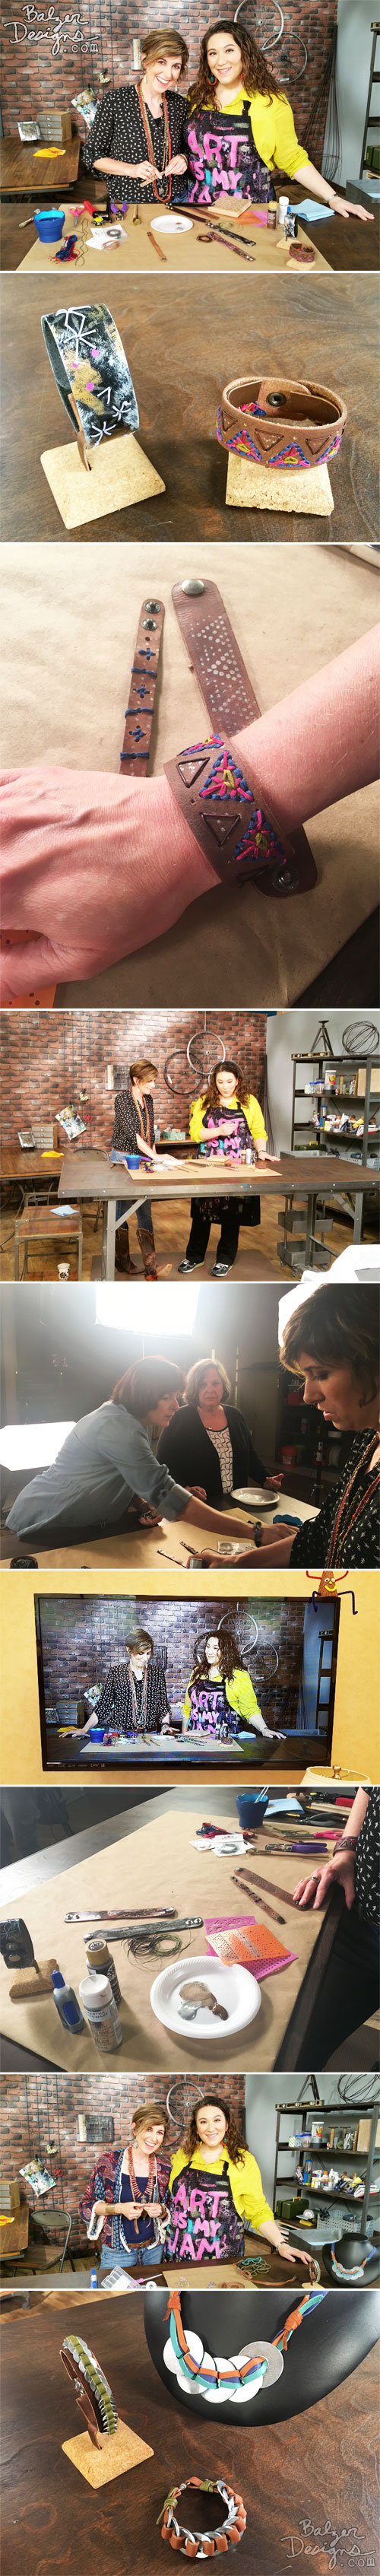 From the Balzer Designs Blog: BEHIND THE SCENES OF MAKE IT ARTSY: SEASON THREE (Part 1)